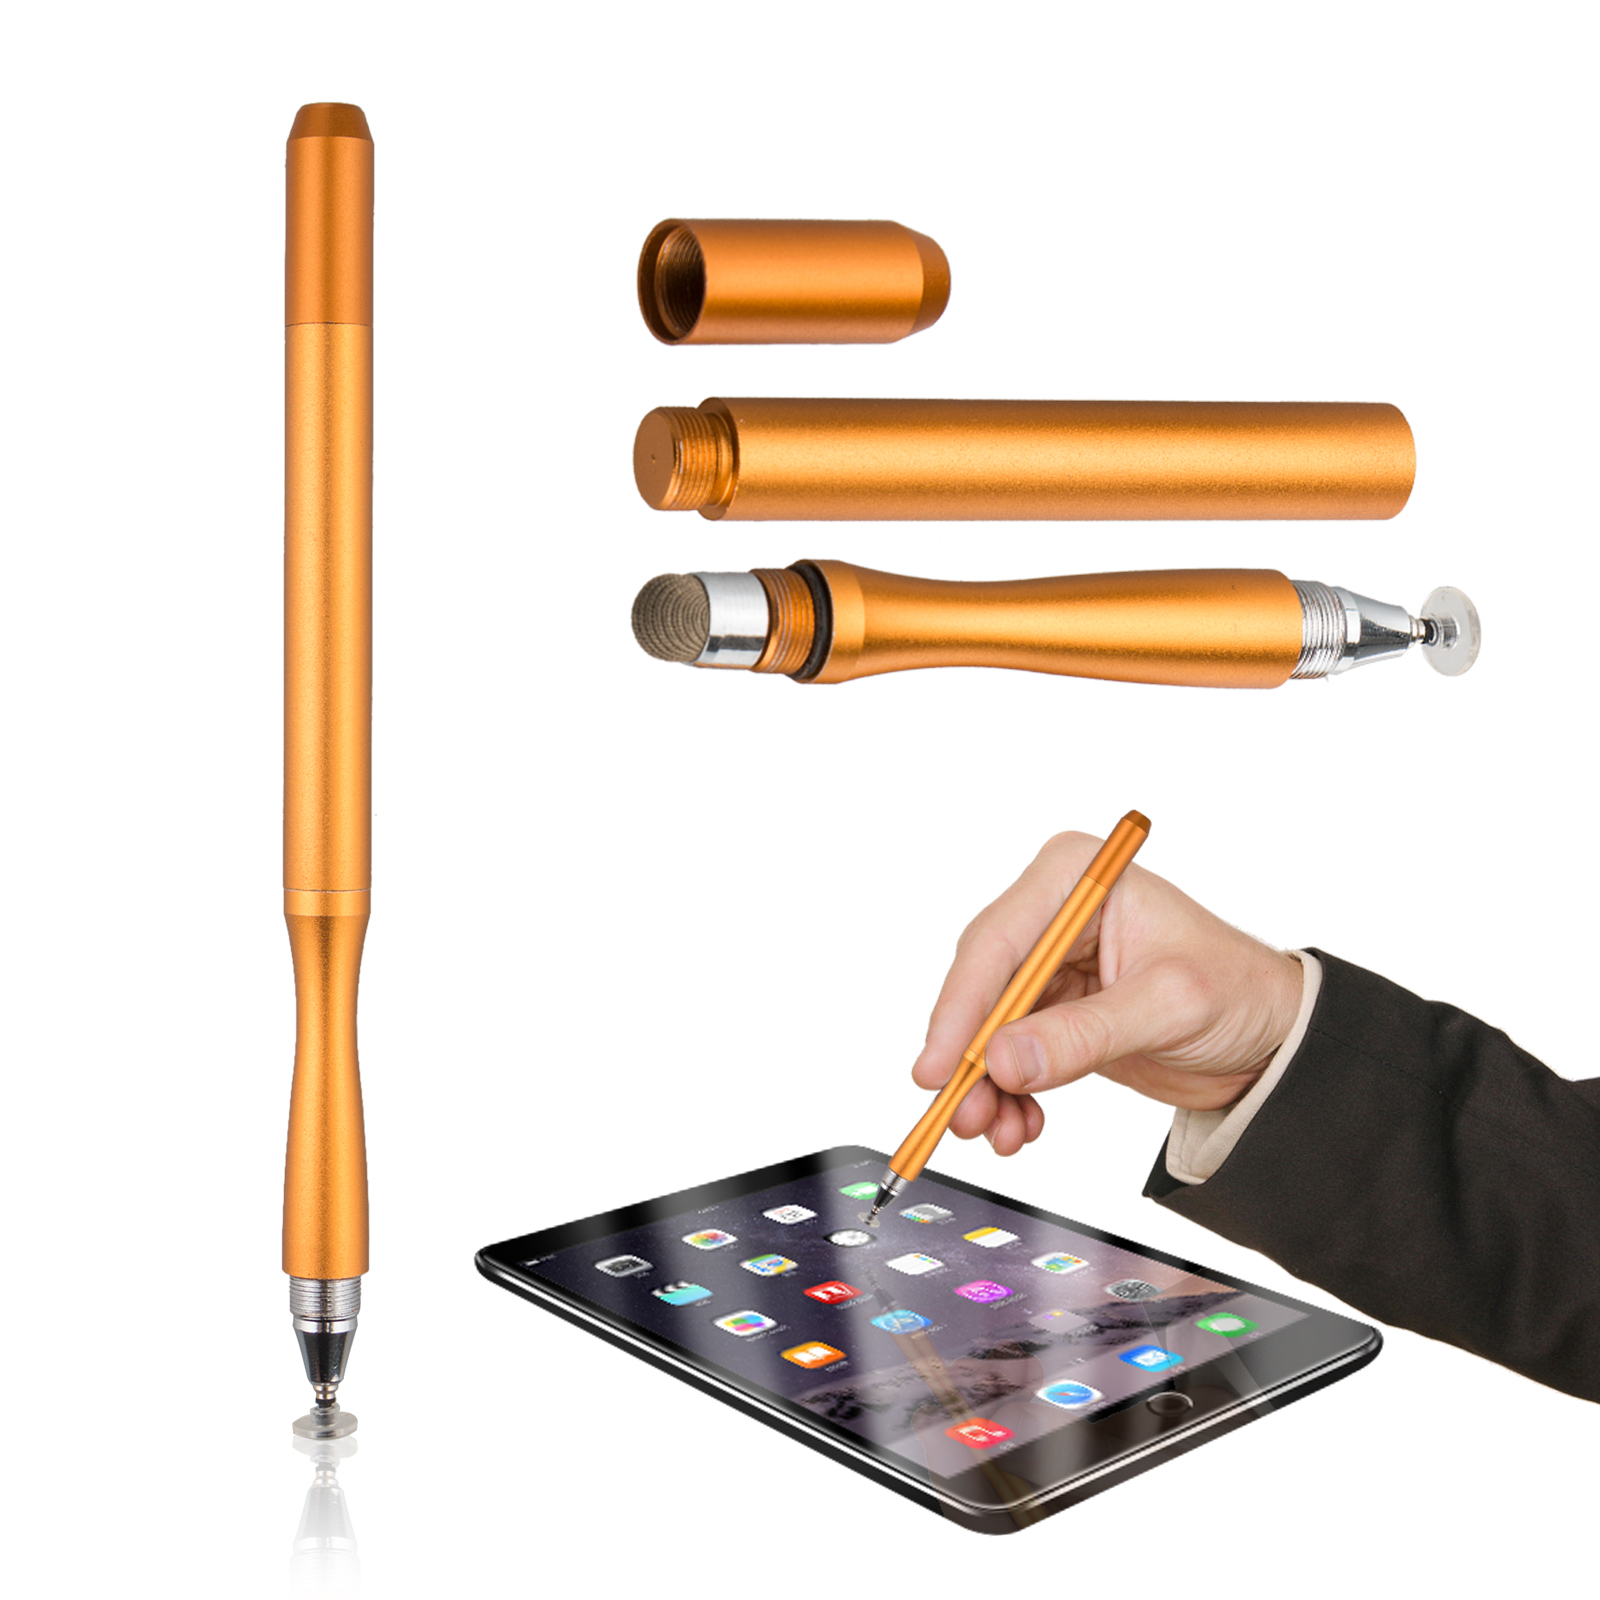 Stylus Pen, Super Capacitive Stylus Fine Point Styluses with Extra Thin Point Disc Tips Universal for Tablet/iPad Mini/Smartphones All Touch Screen Devices